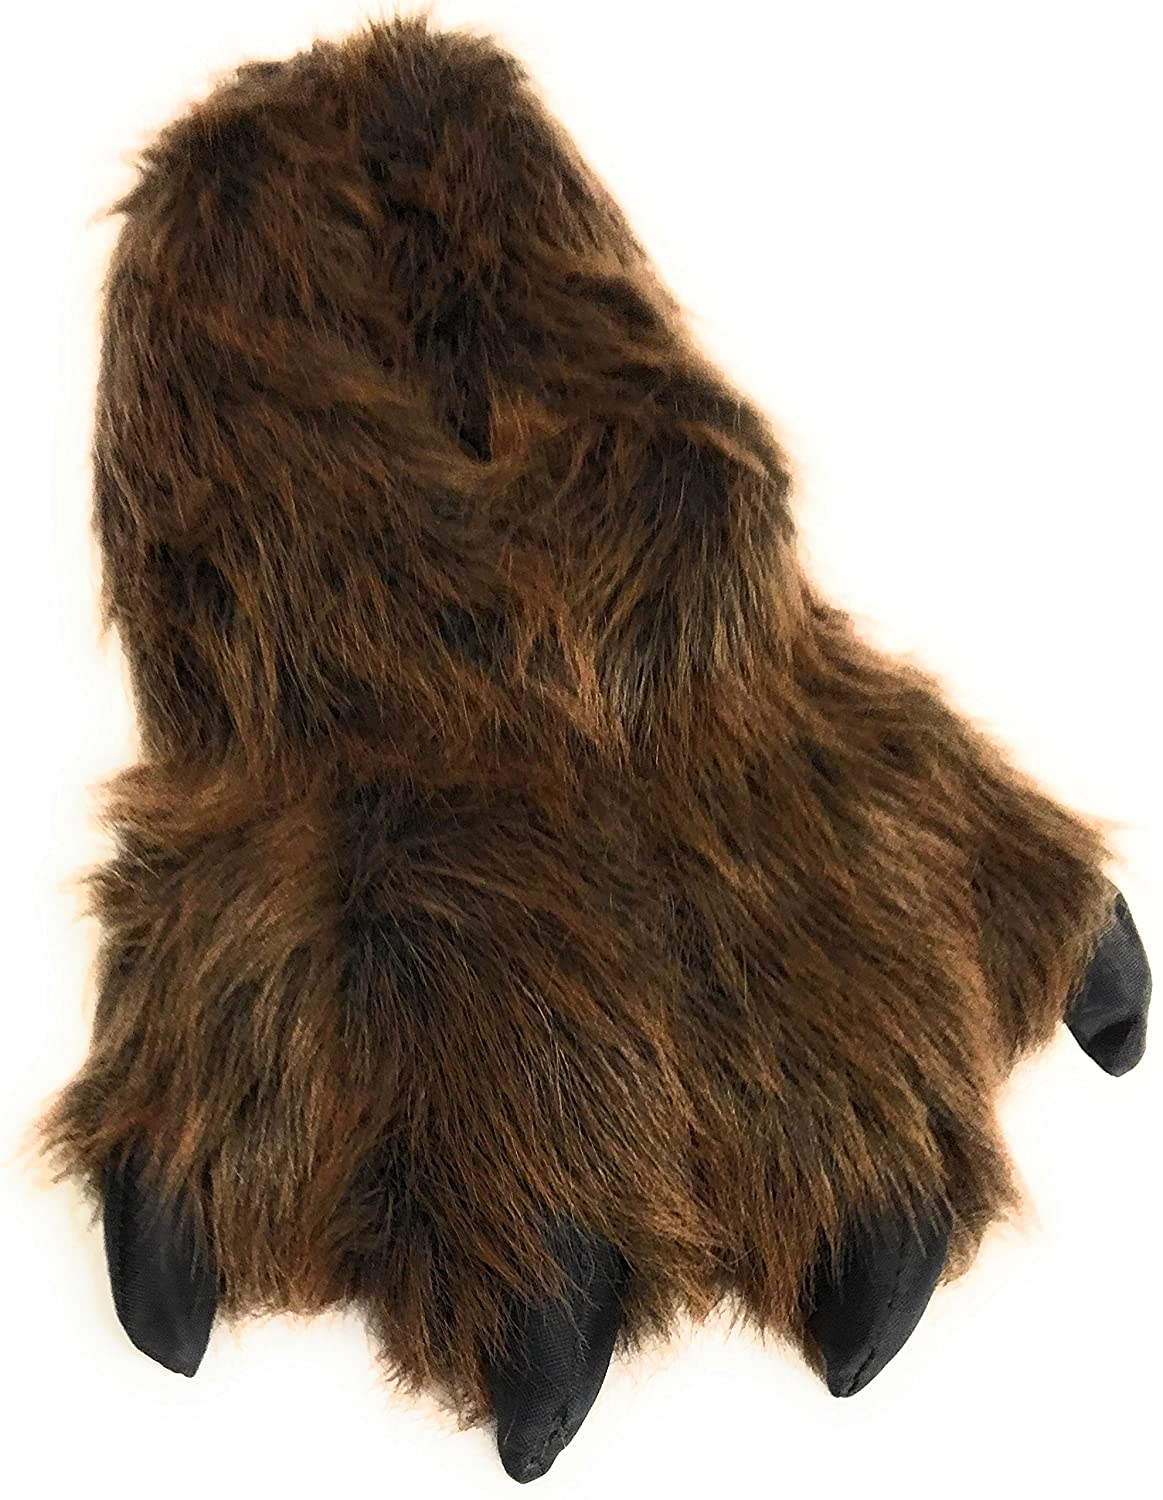 Brown Grizzly Sundial Wild Ones Furry Animal Claw Slippers for Toddlers, Kids and Adults